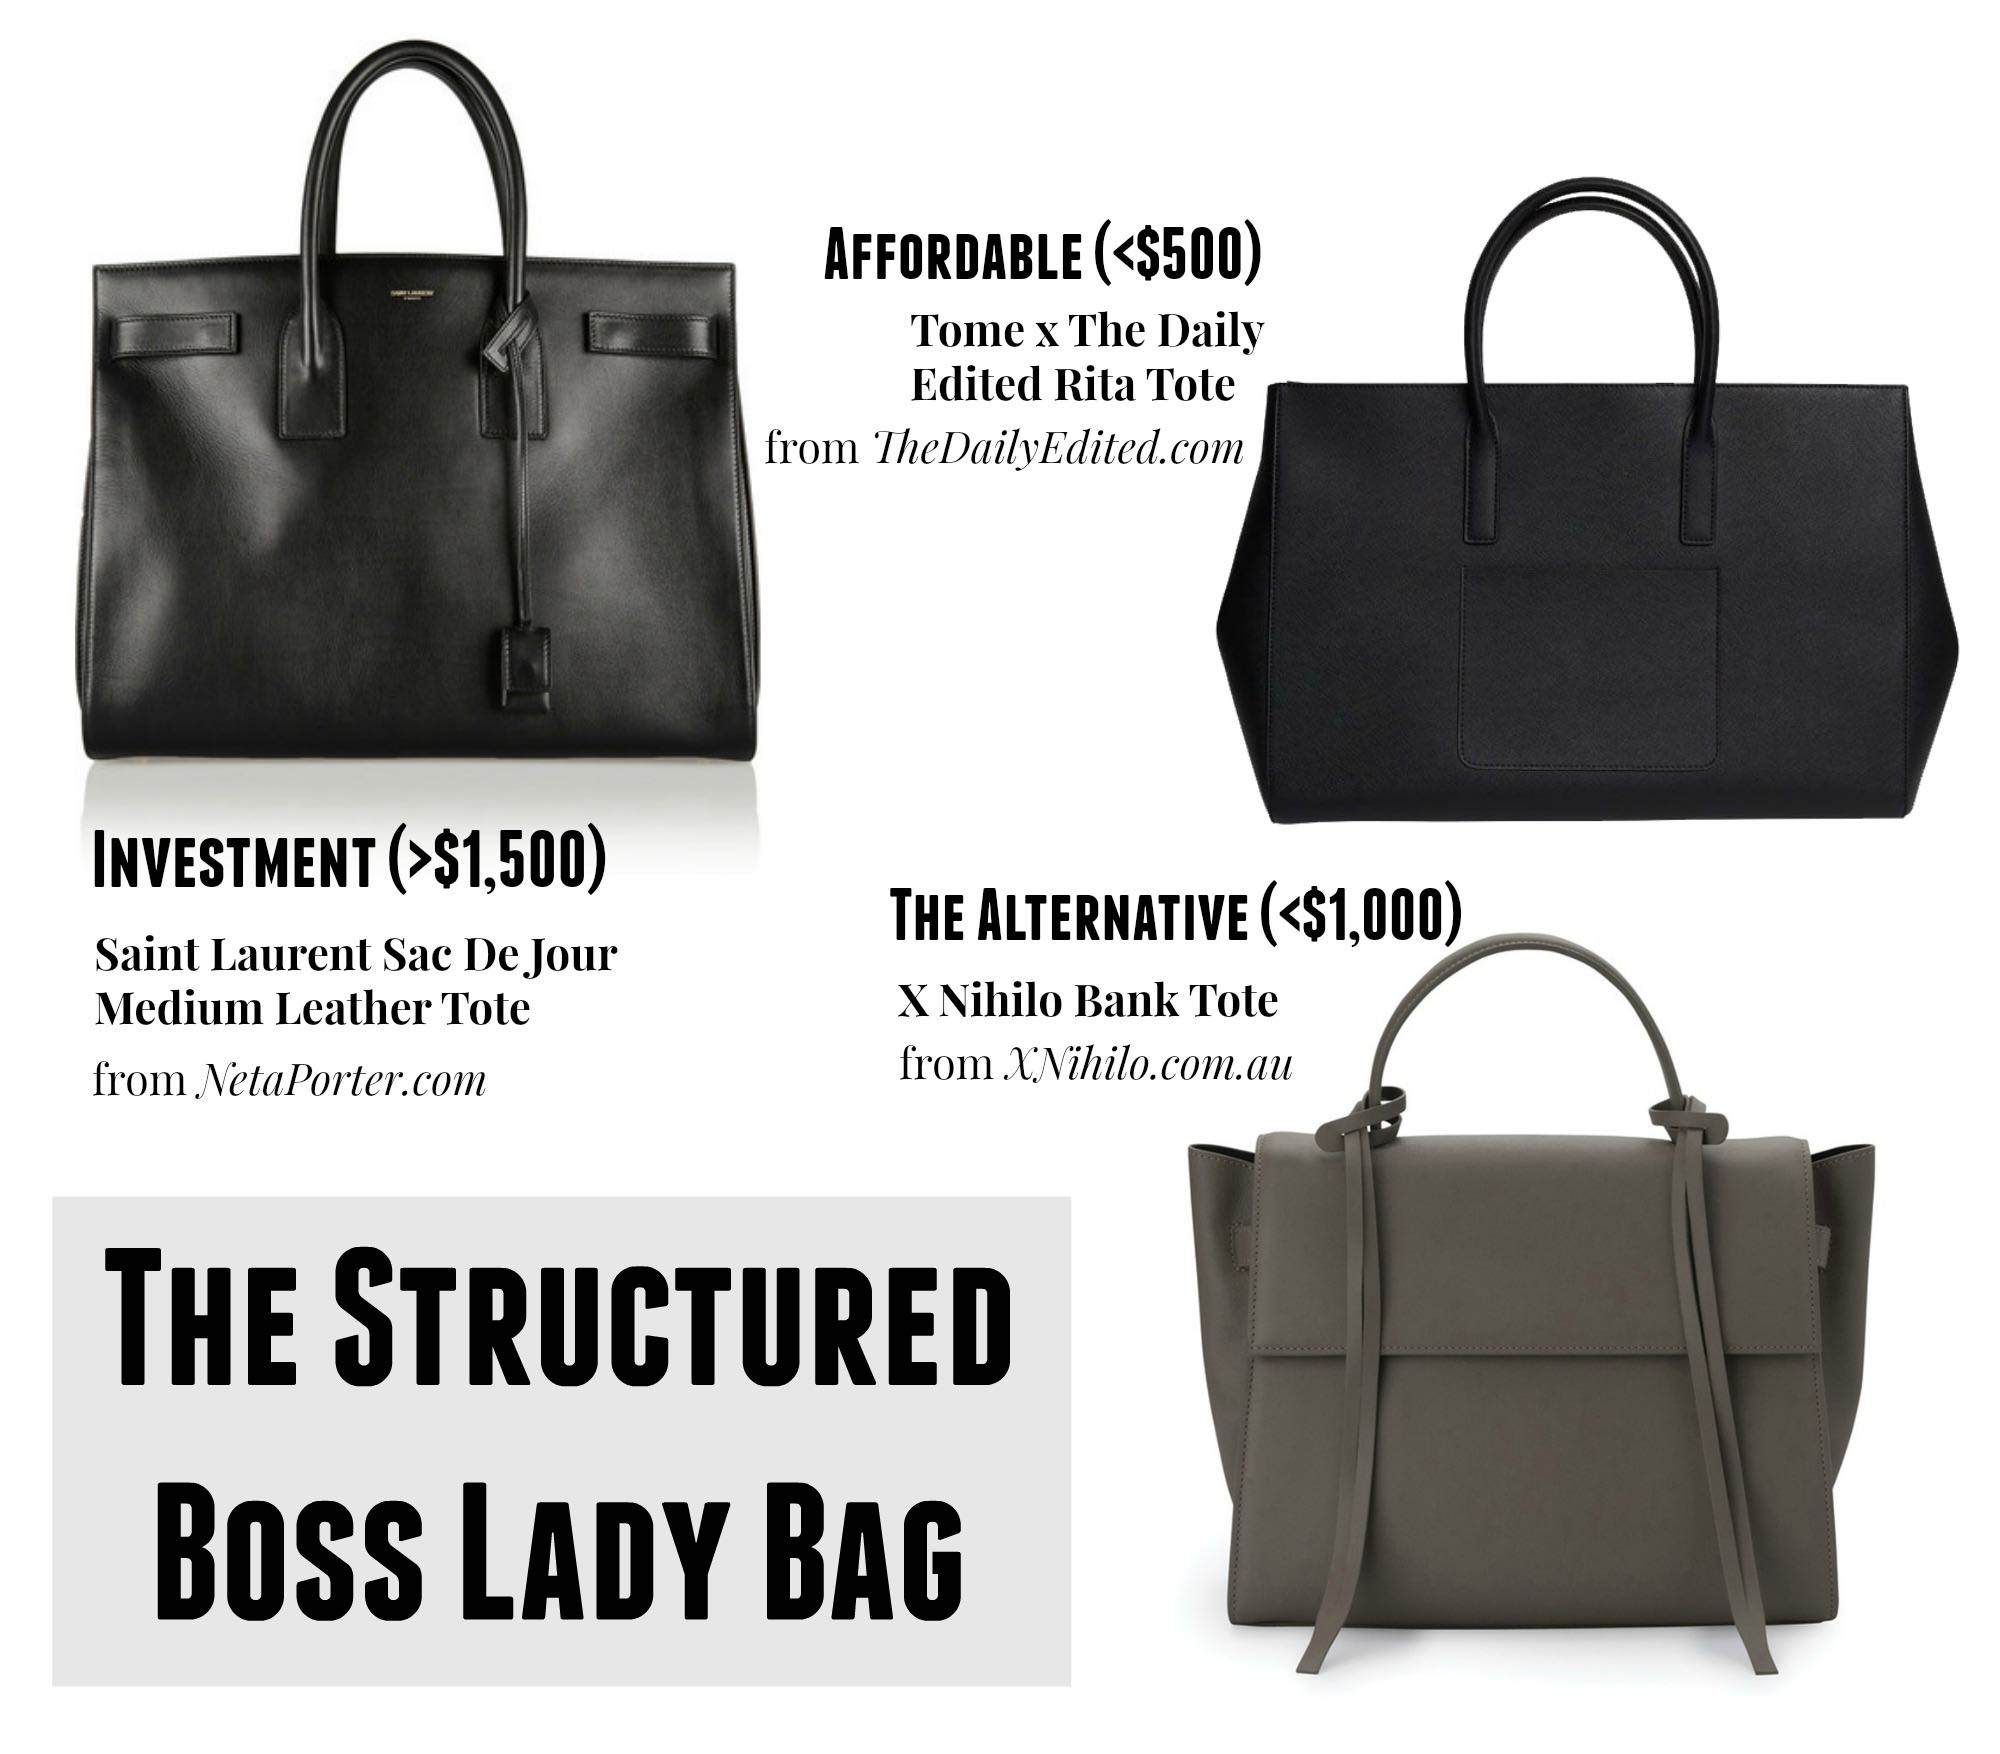 The Structured Boss Lady Bag